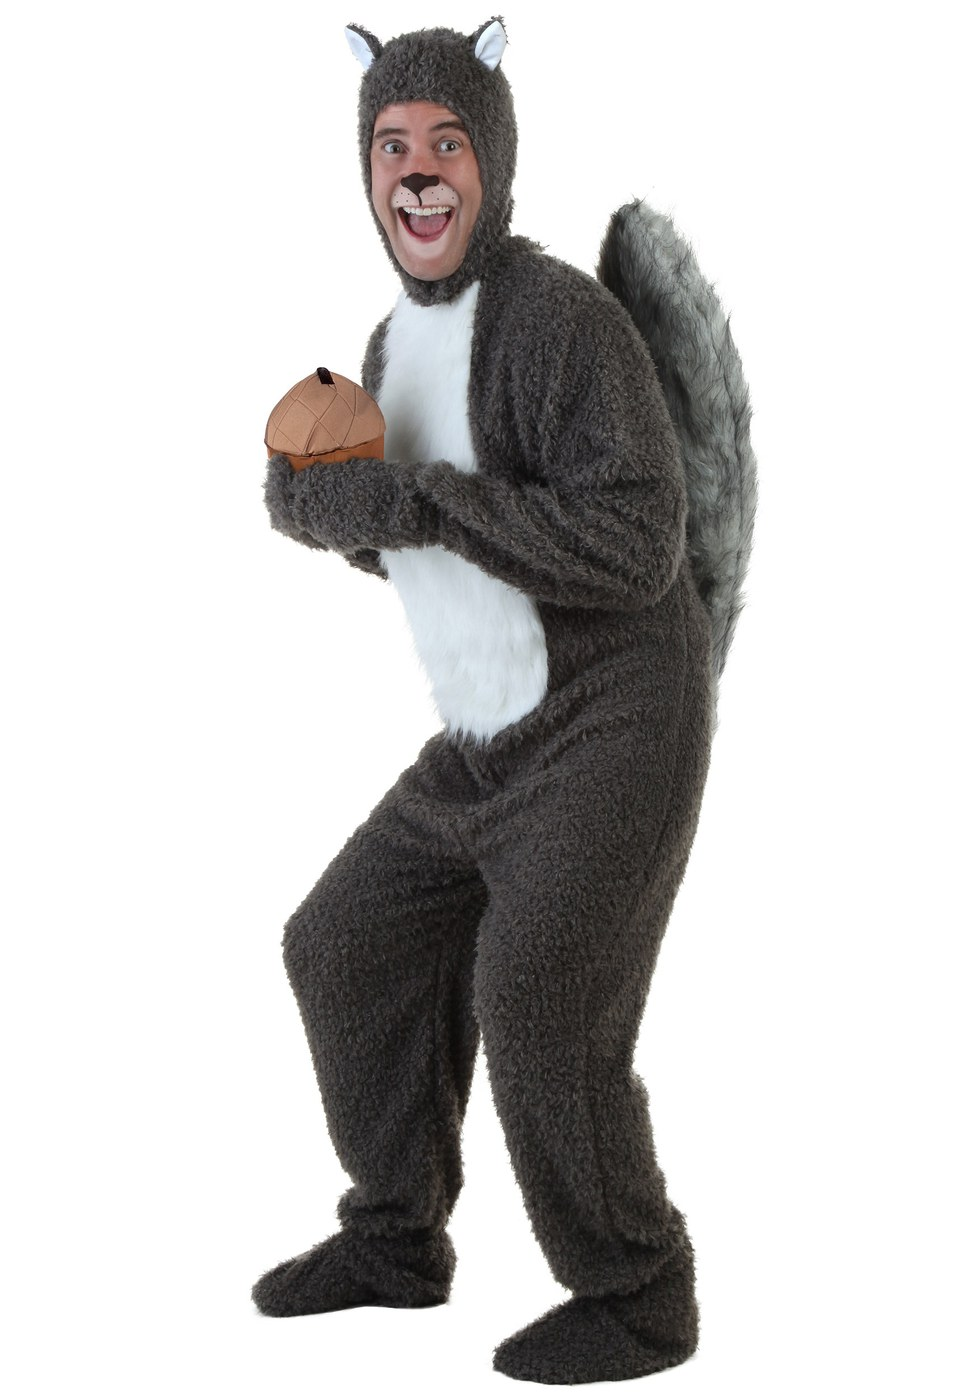 15 providence college themed halloween costumes - College Halloween Costumes Male